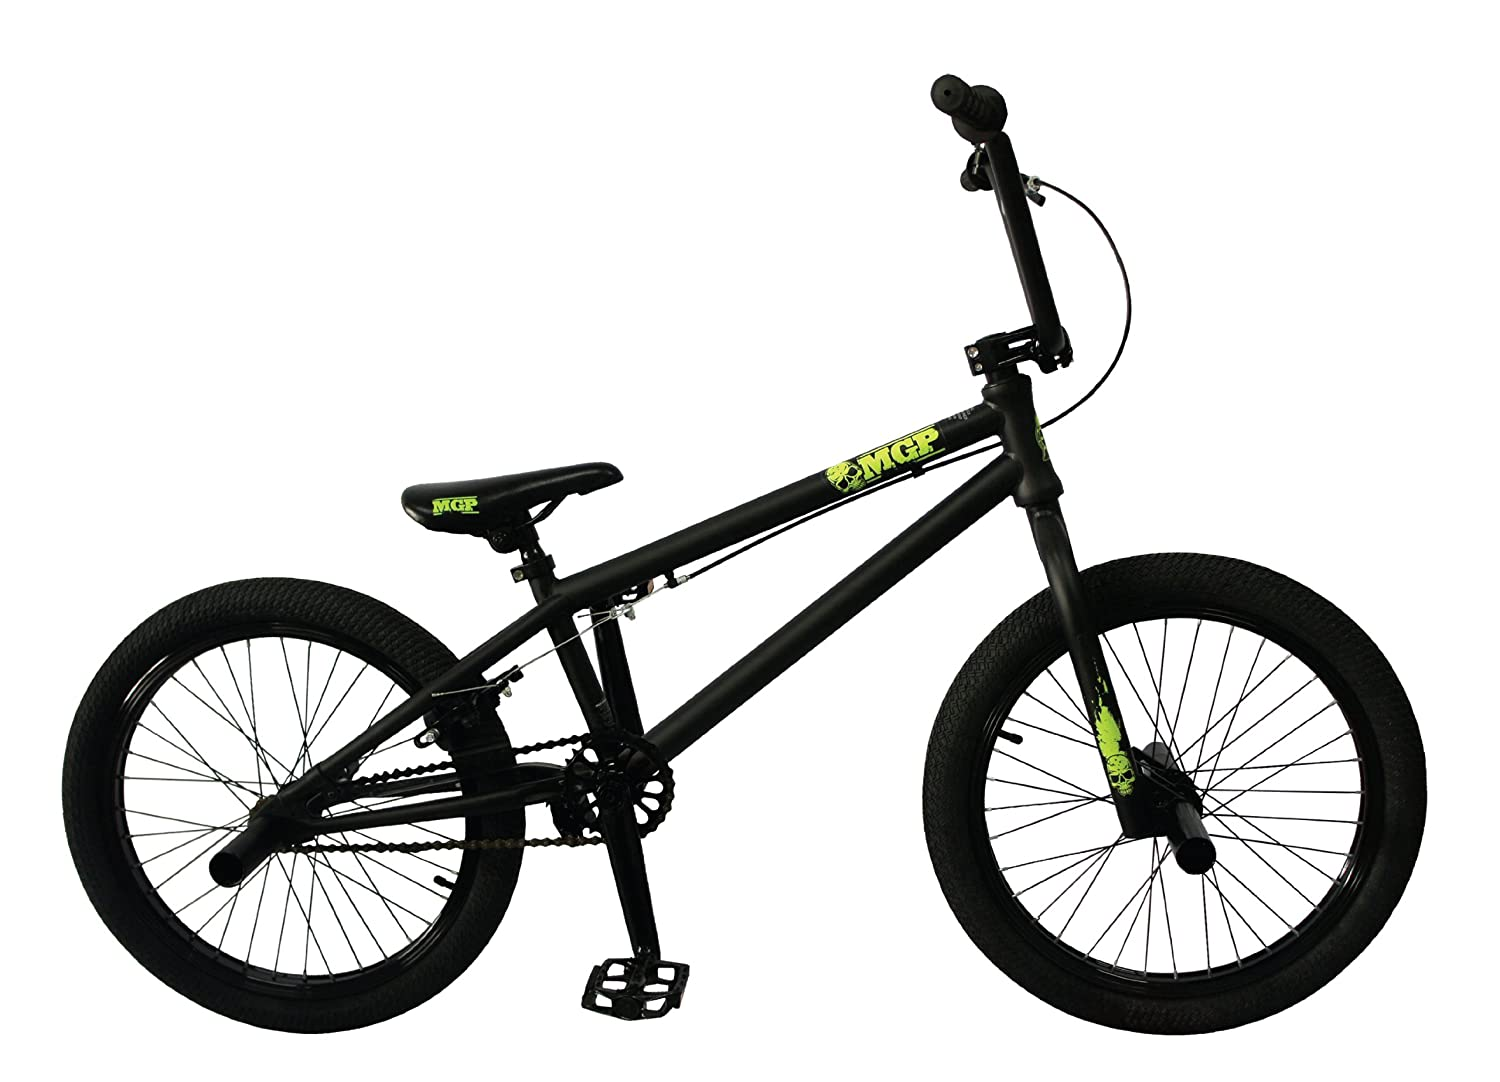 Bikes For Boys 24 Inch At Academy Madd Gear Inch Boost BMX